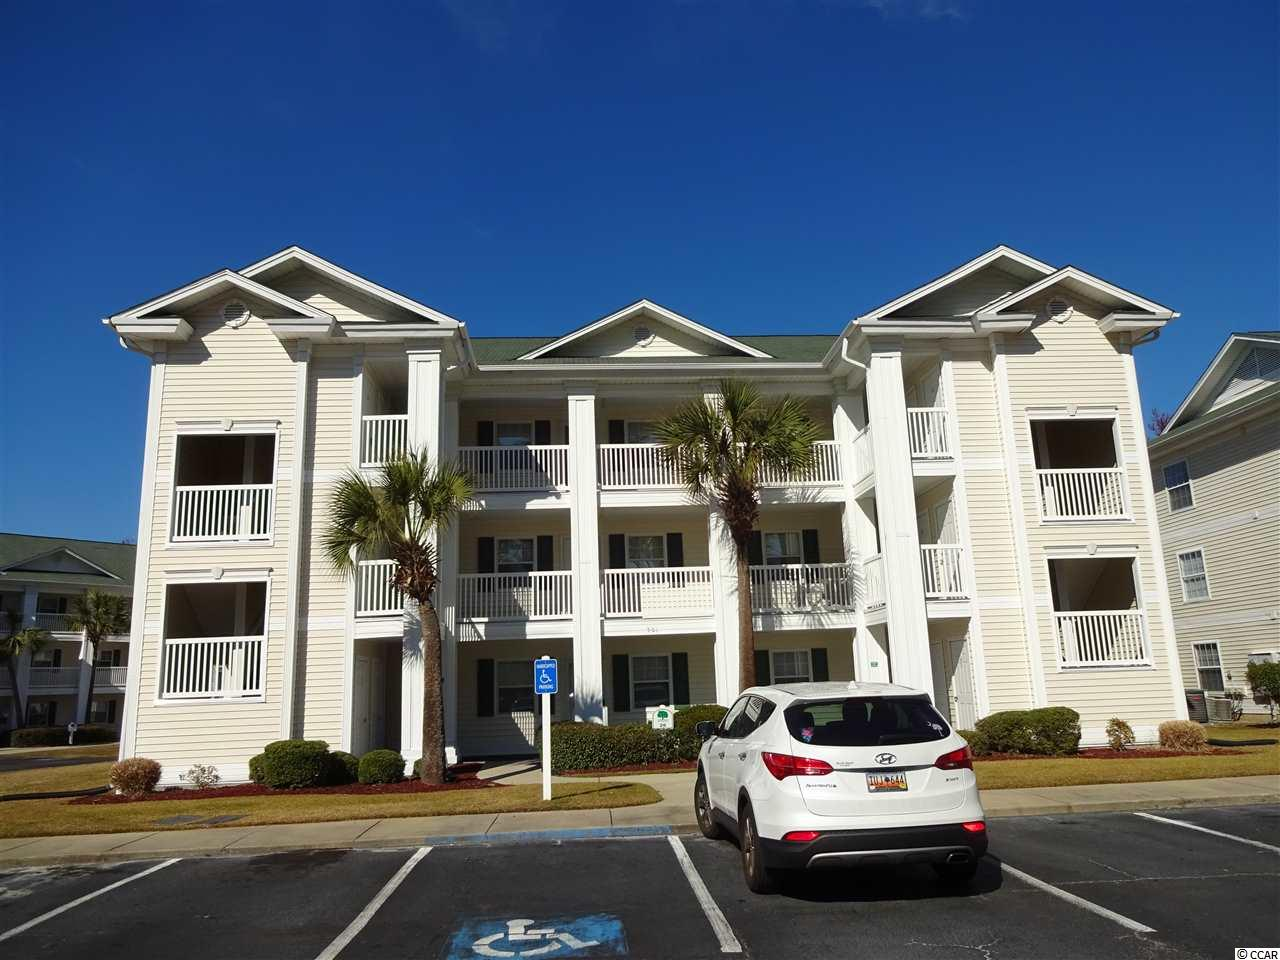 Two Bedroom River Oaks Condos Condos For Sale River Oaks River Oaks Condos Sc Myrtle